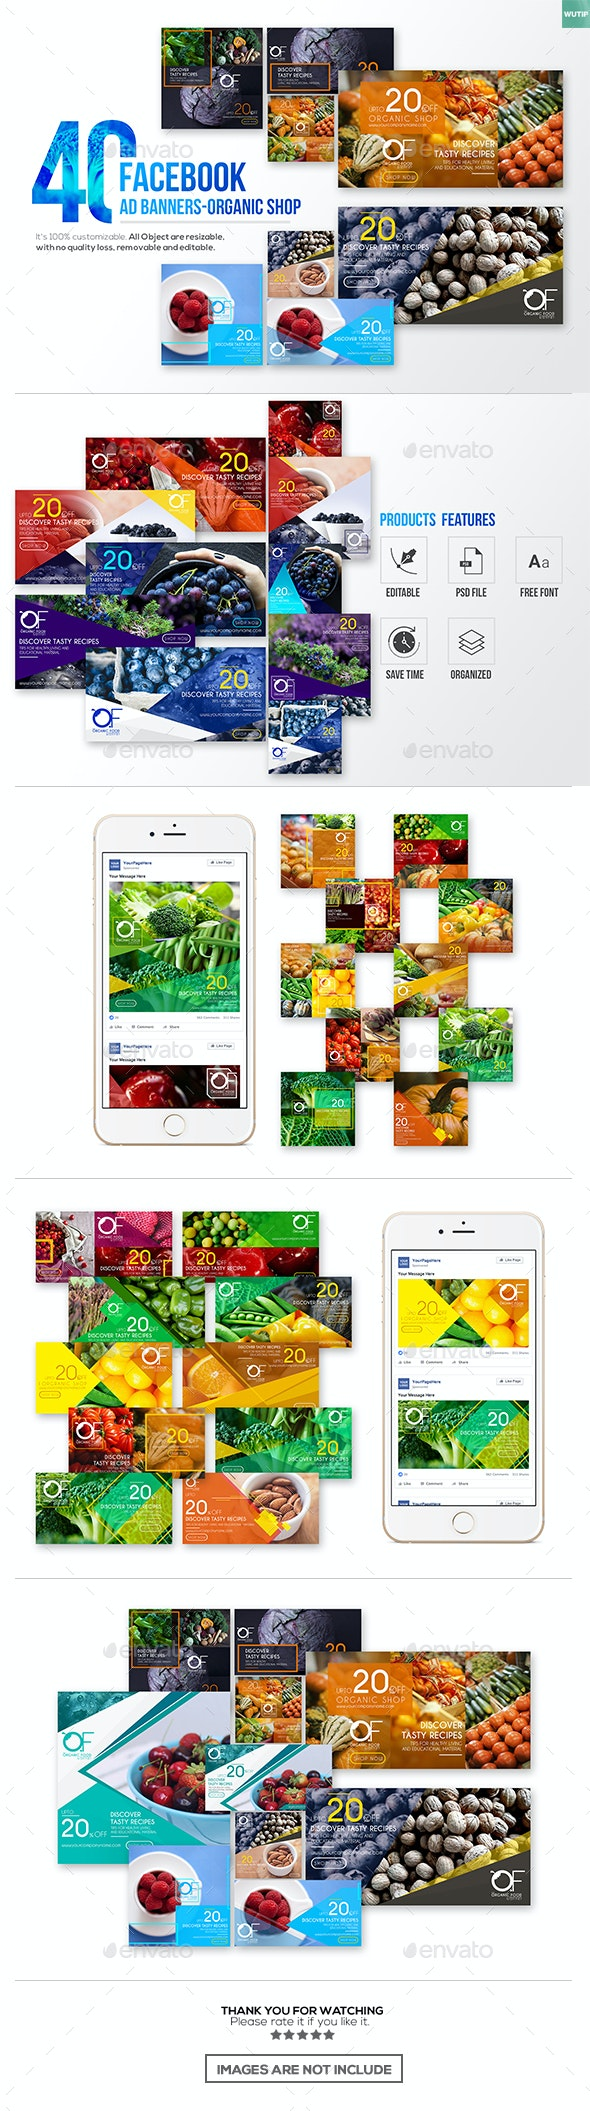 40 Facebook Ad Banners-Organic Shop - Banners & Ads Web Elements